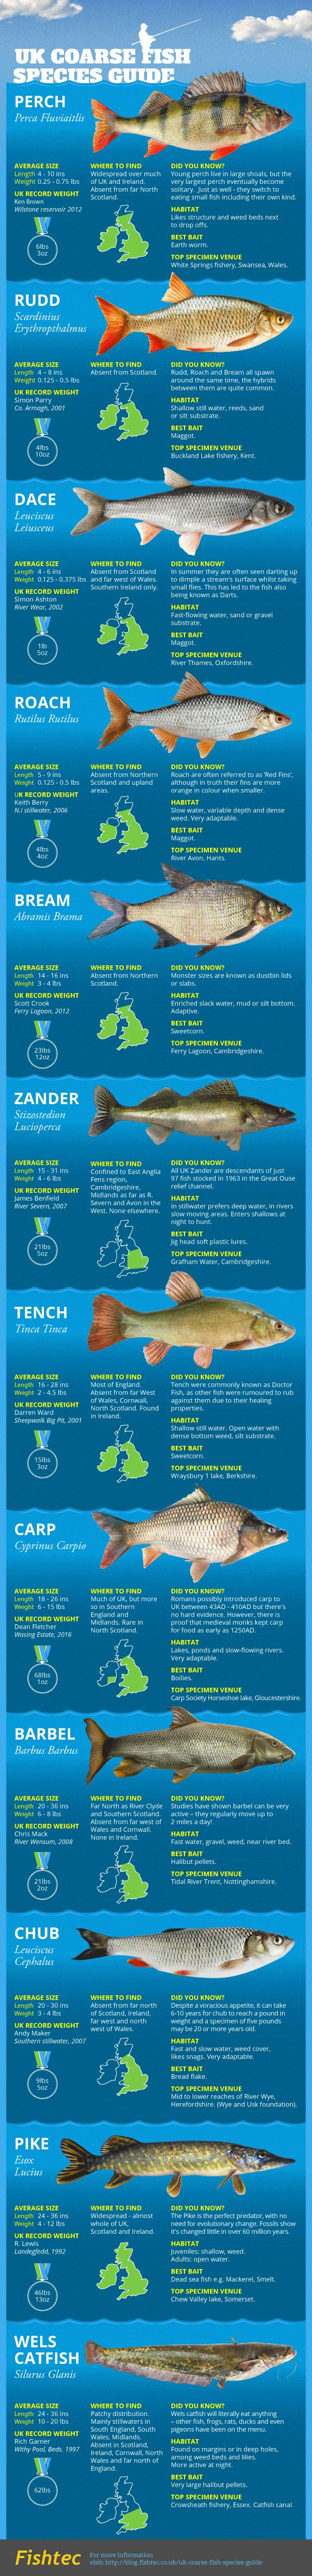 UK Coarse Fish Species Guide #Infographic #Fish